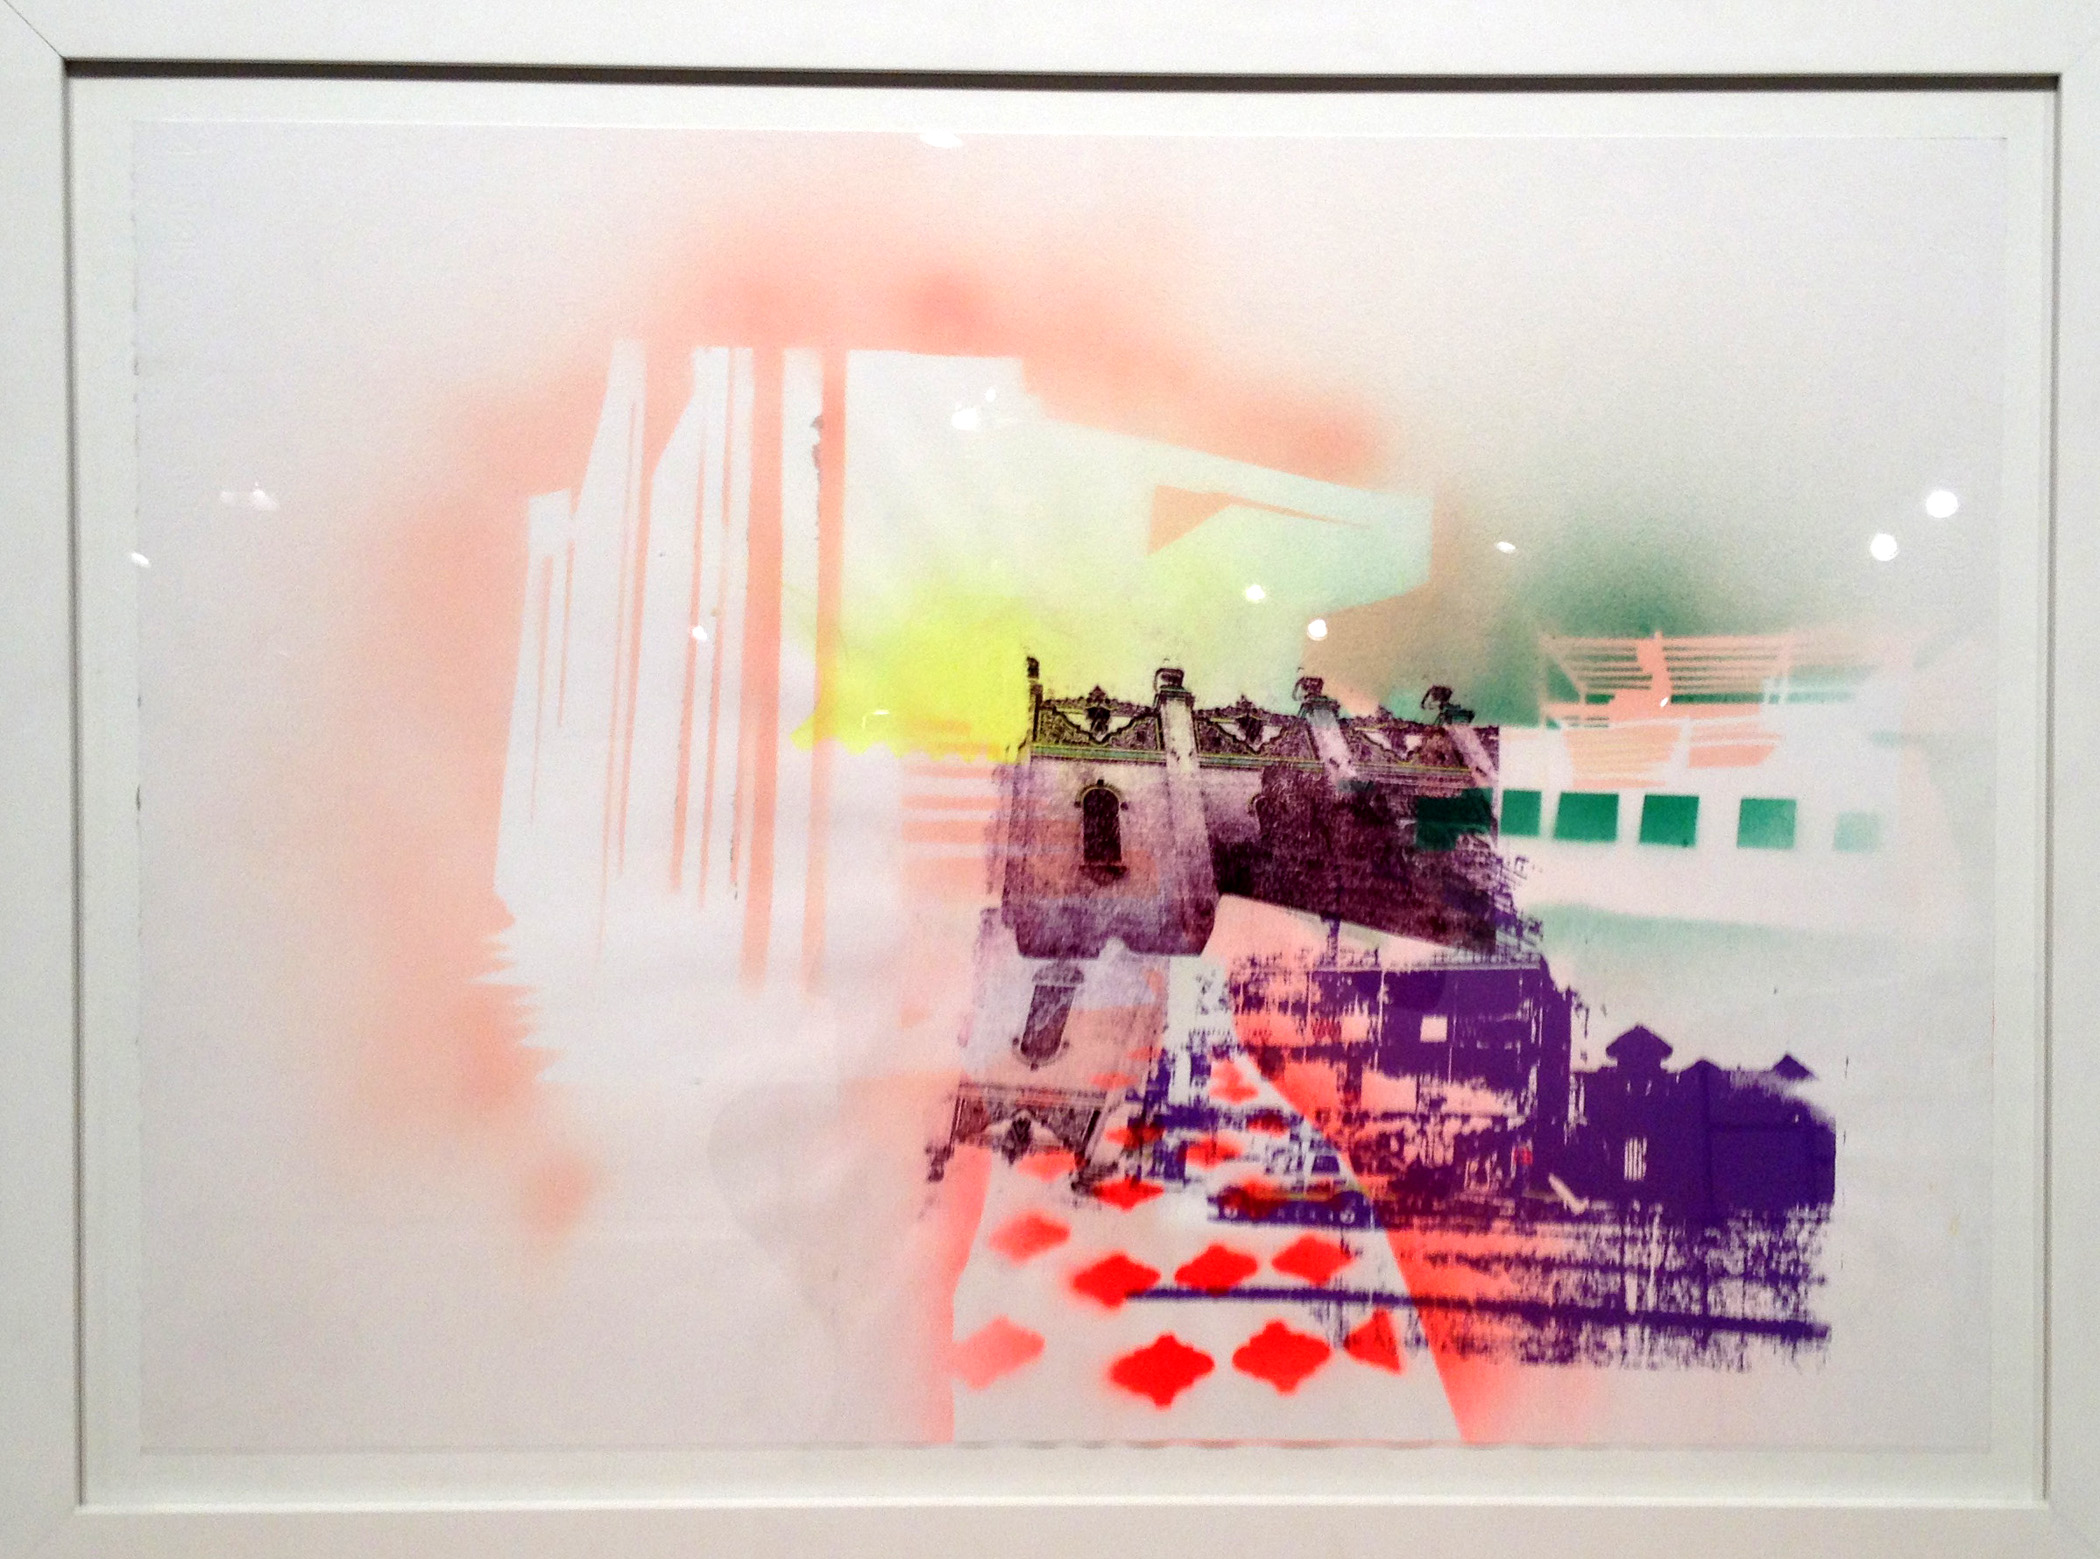 Jai Alai, a merry past time,  2014 Spray paint pochoir, screen print and paper lithography, 22 in H x 30 in W